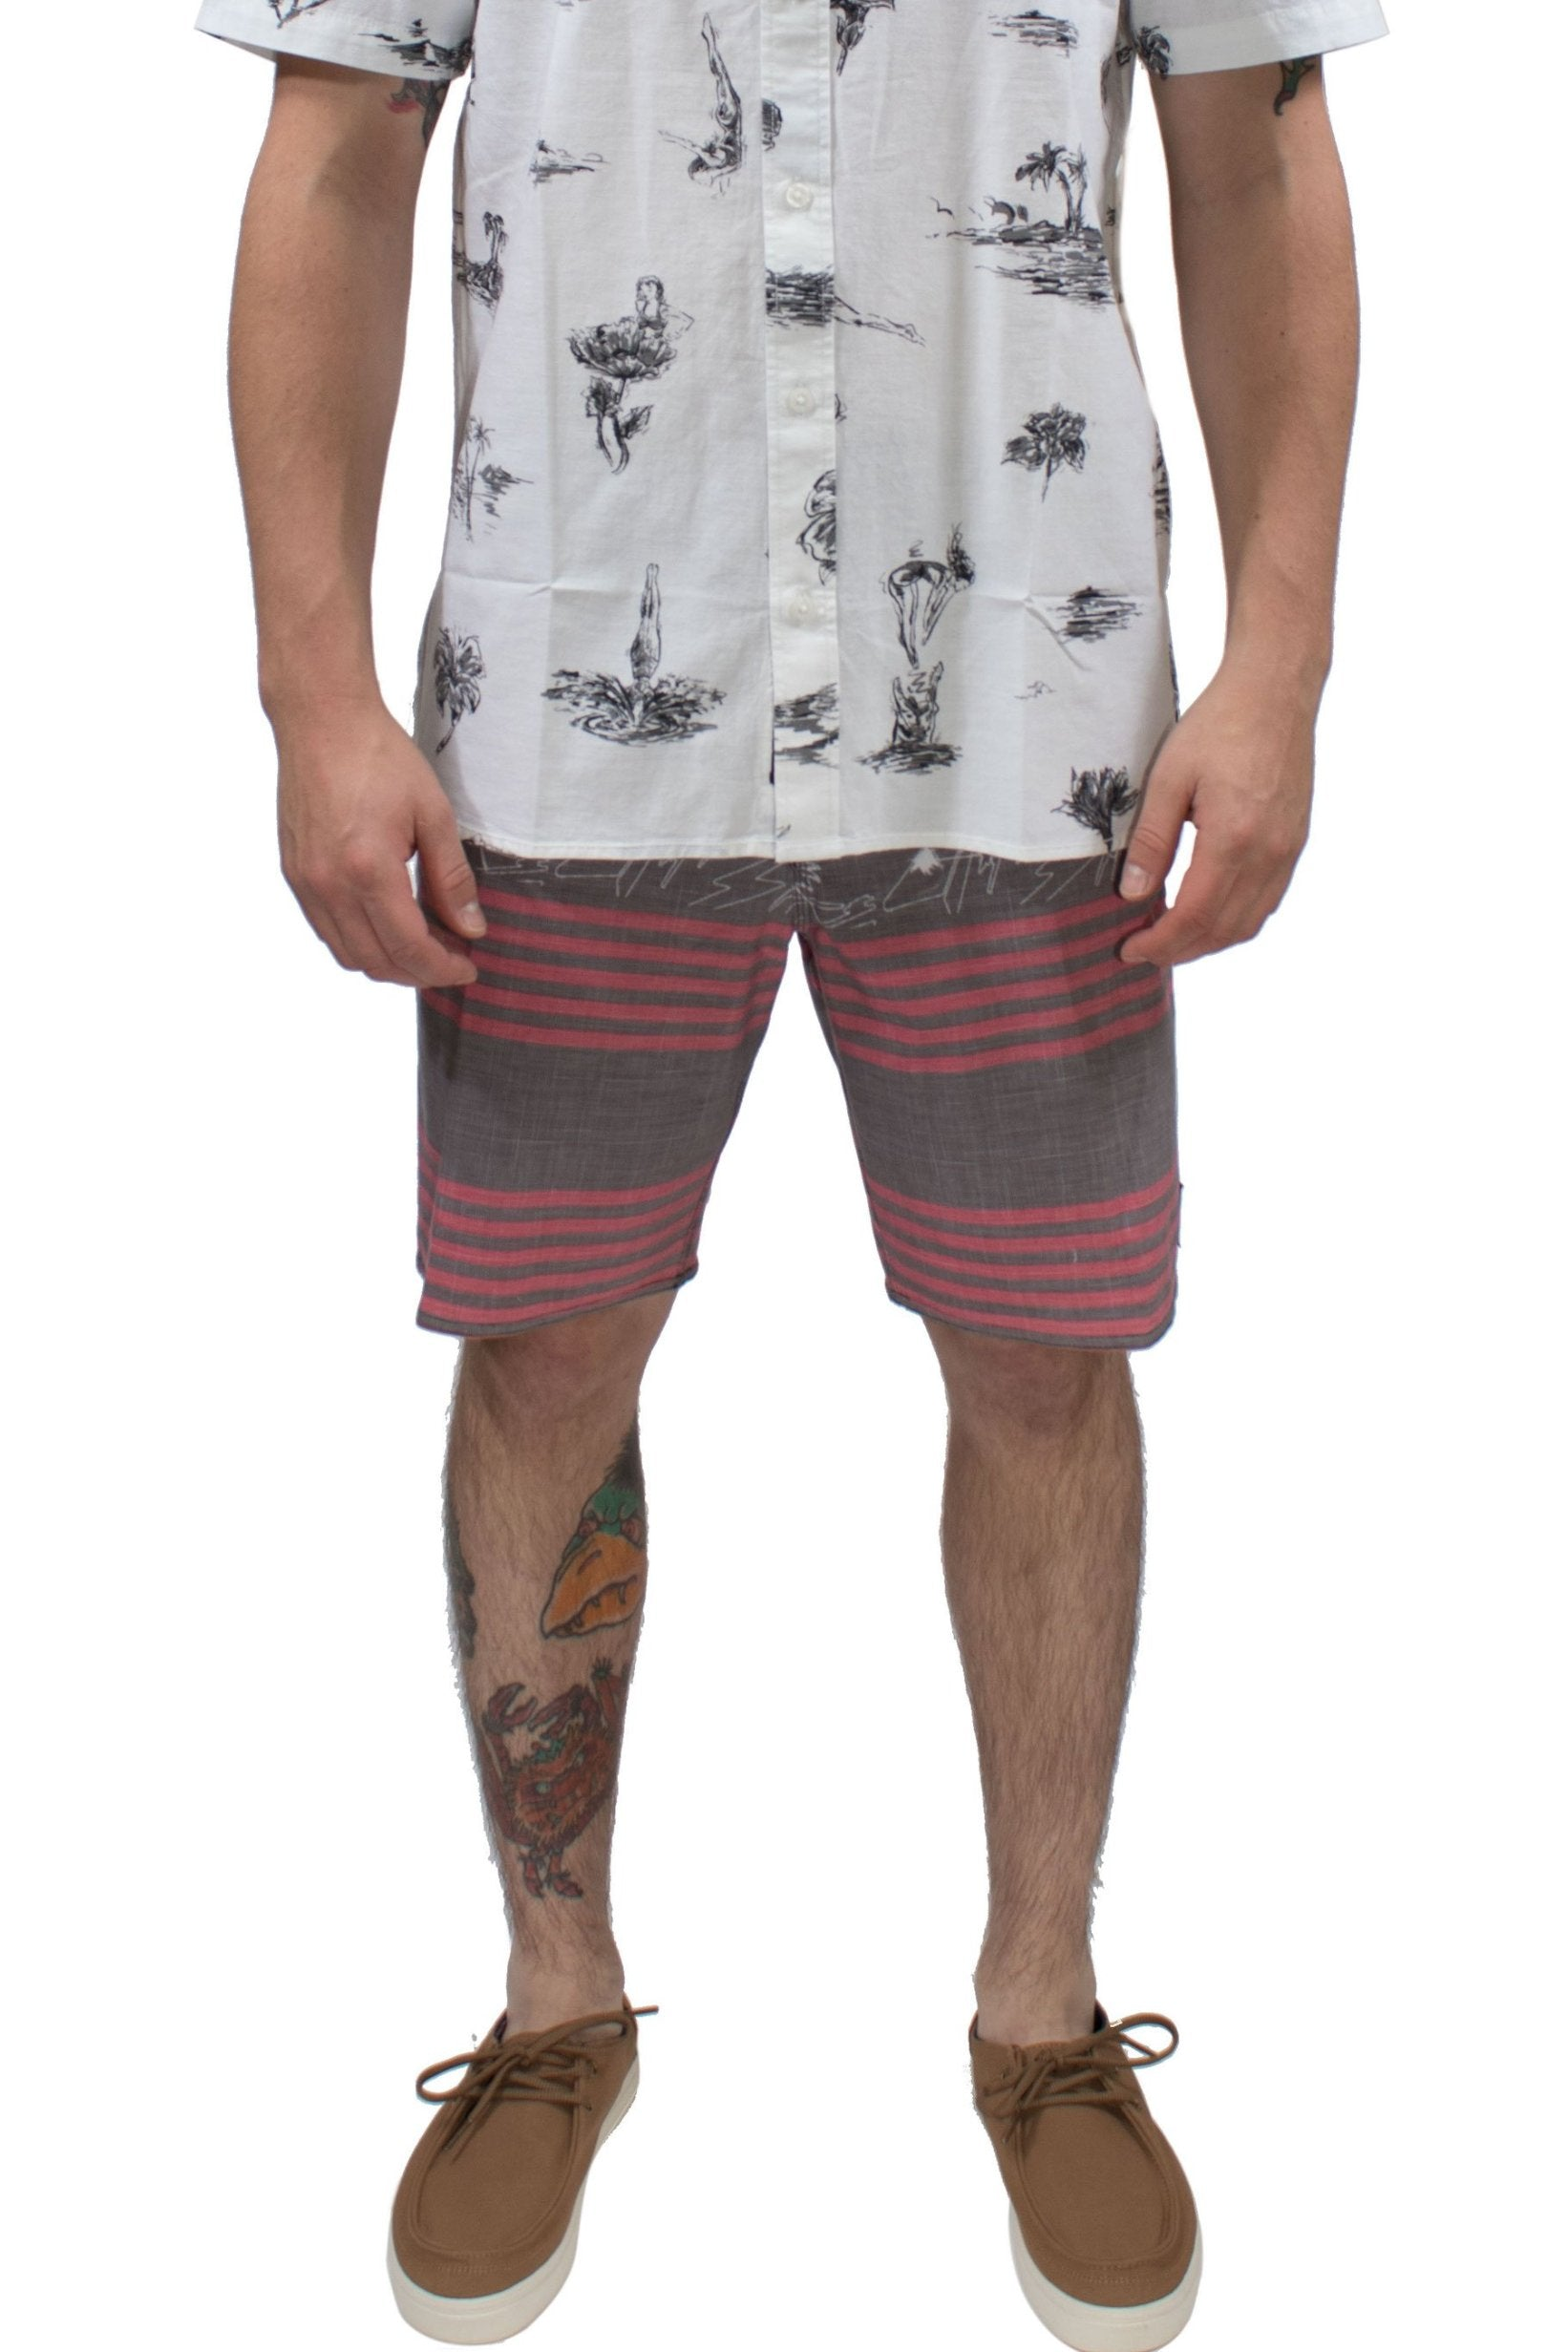 7592ecf74b9c Vans Era Triblend Boardshort- Black Island Beach - Chane